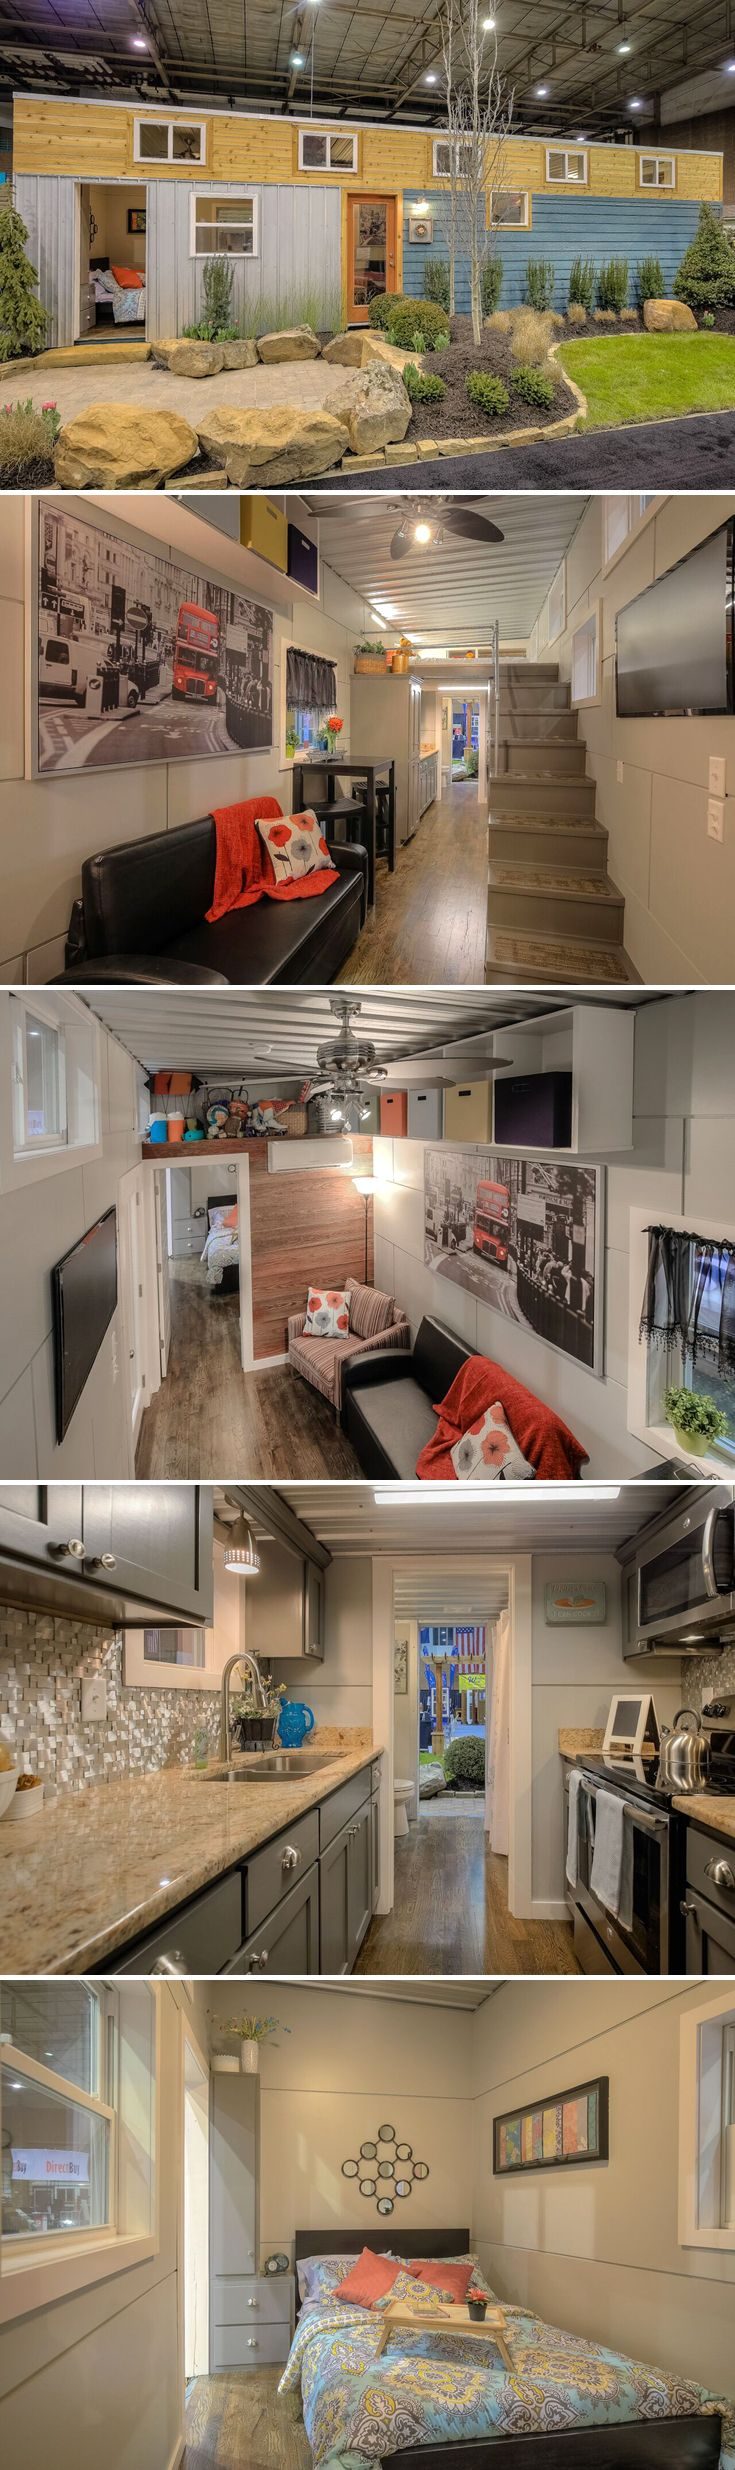 1966 best tiny house dreamin 39 images on pinterest tiny for Tiny house with main floor bedroom